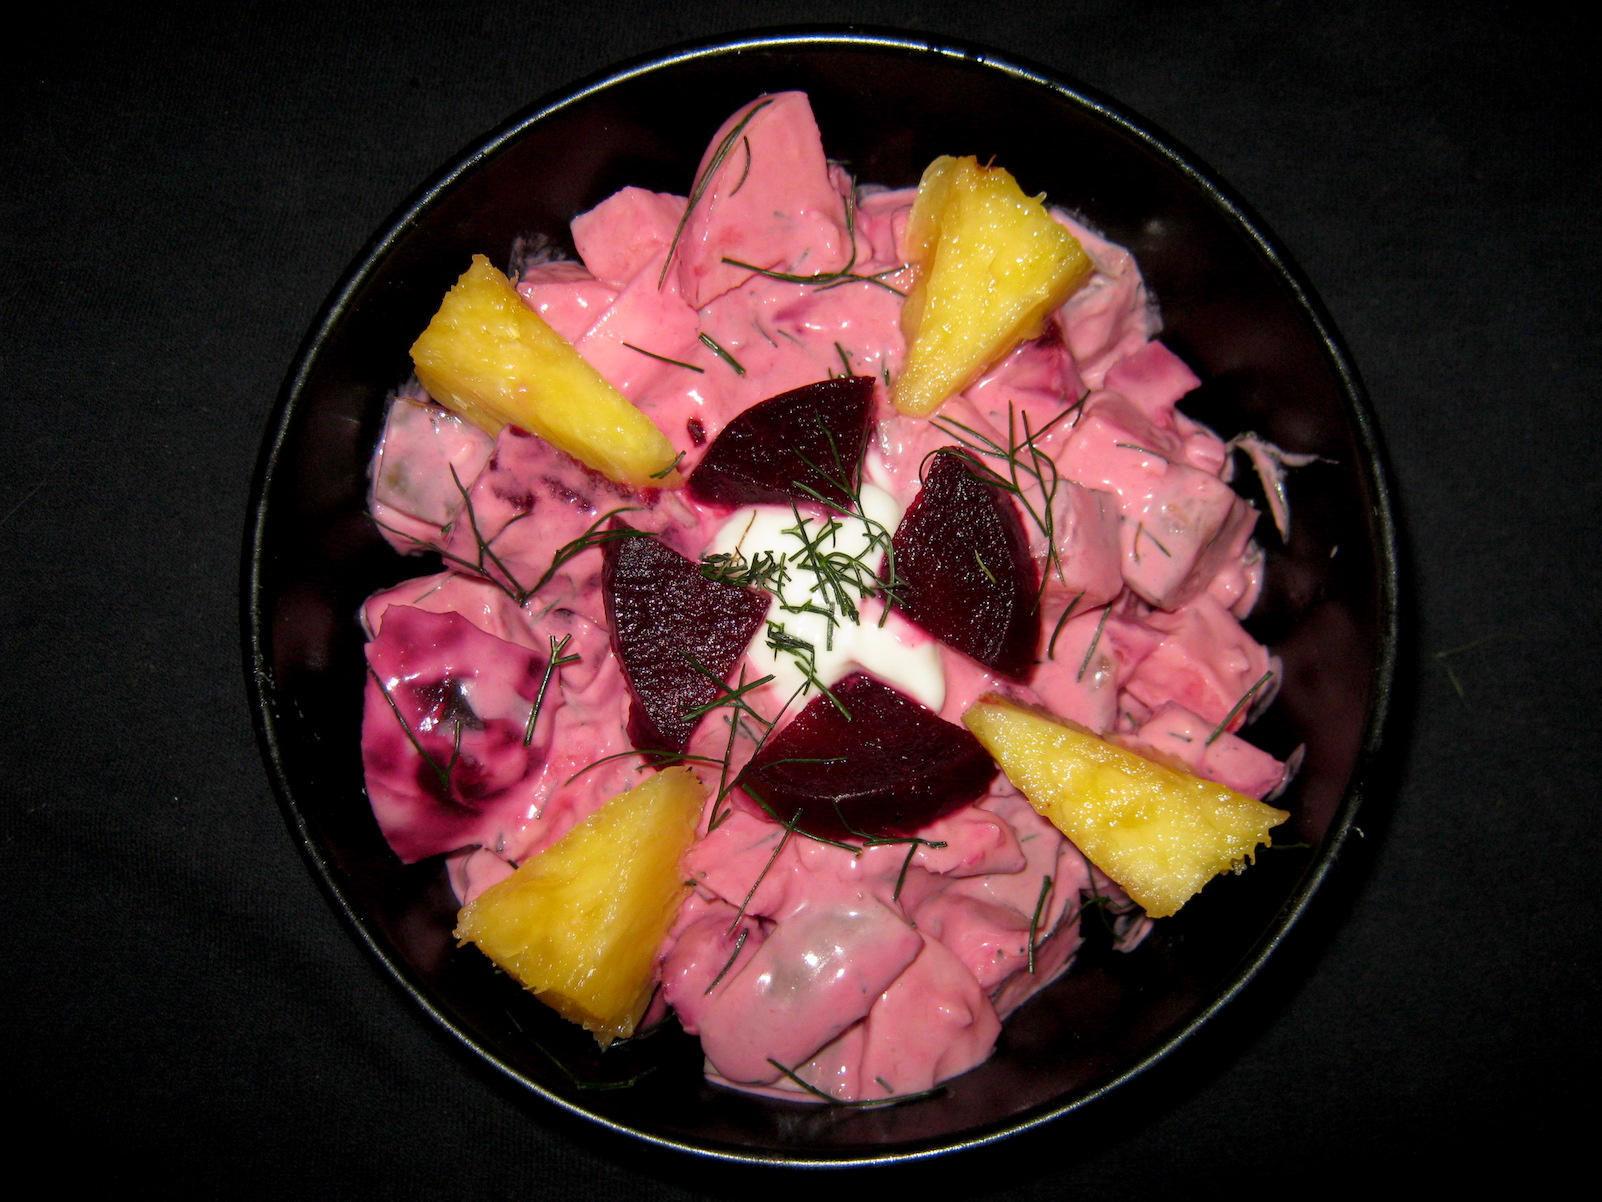 Red Herring salad with beetroot and pineapple in a bowl